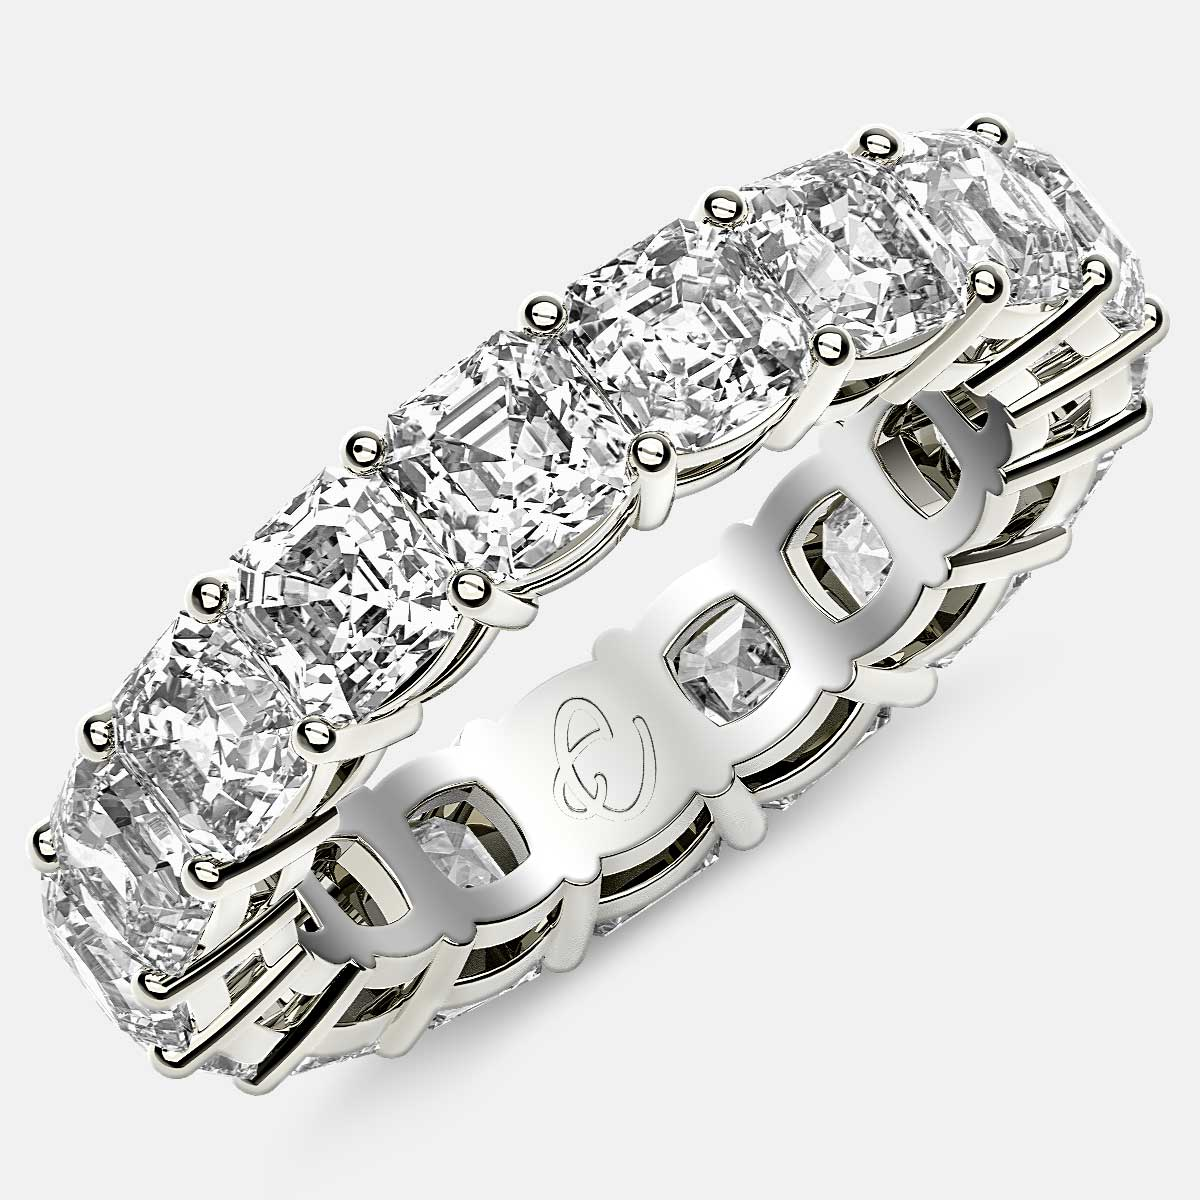 Best Offer on Asscher Cut Diamond Band in Platinum - www.eternityus.com